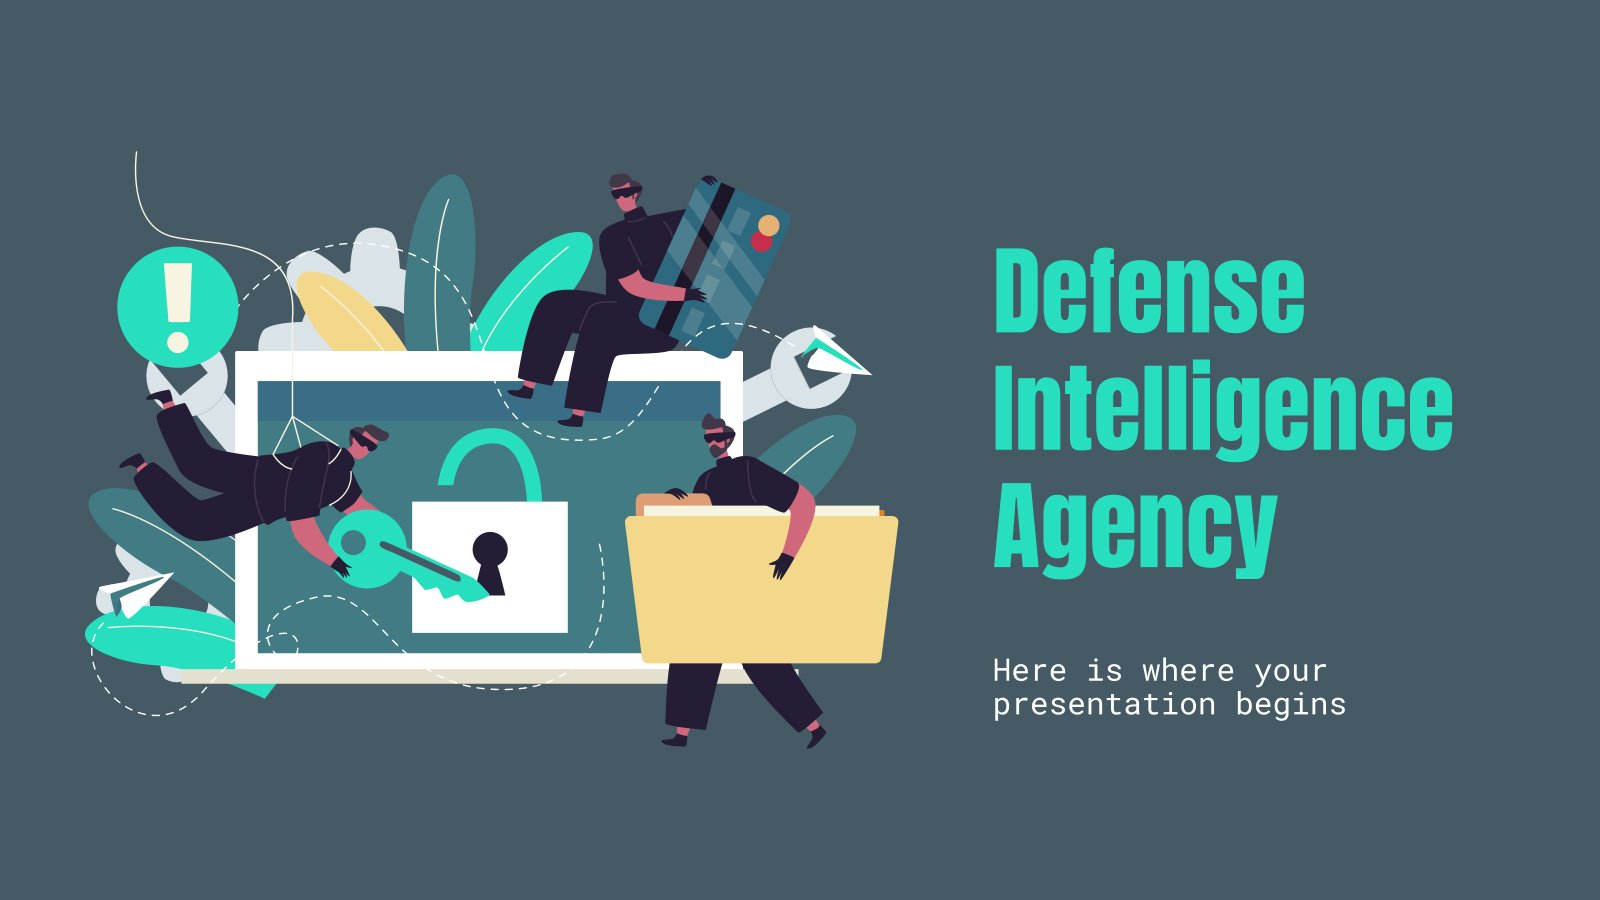 Defense Intelligence Agency presentation template